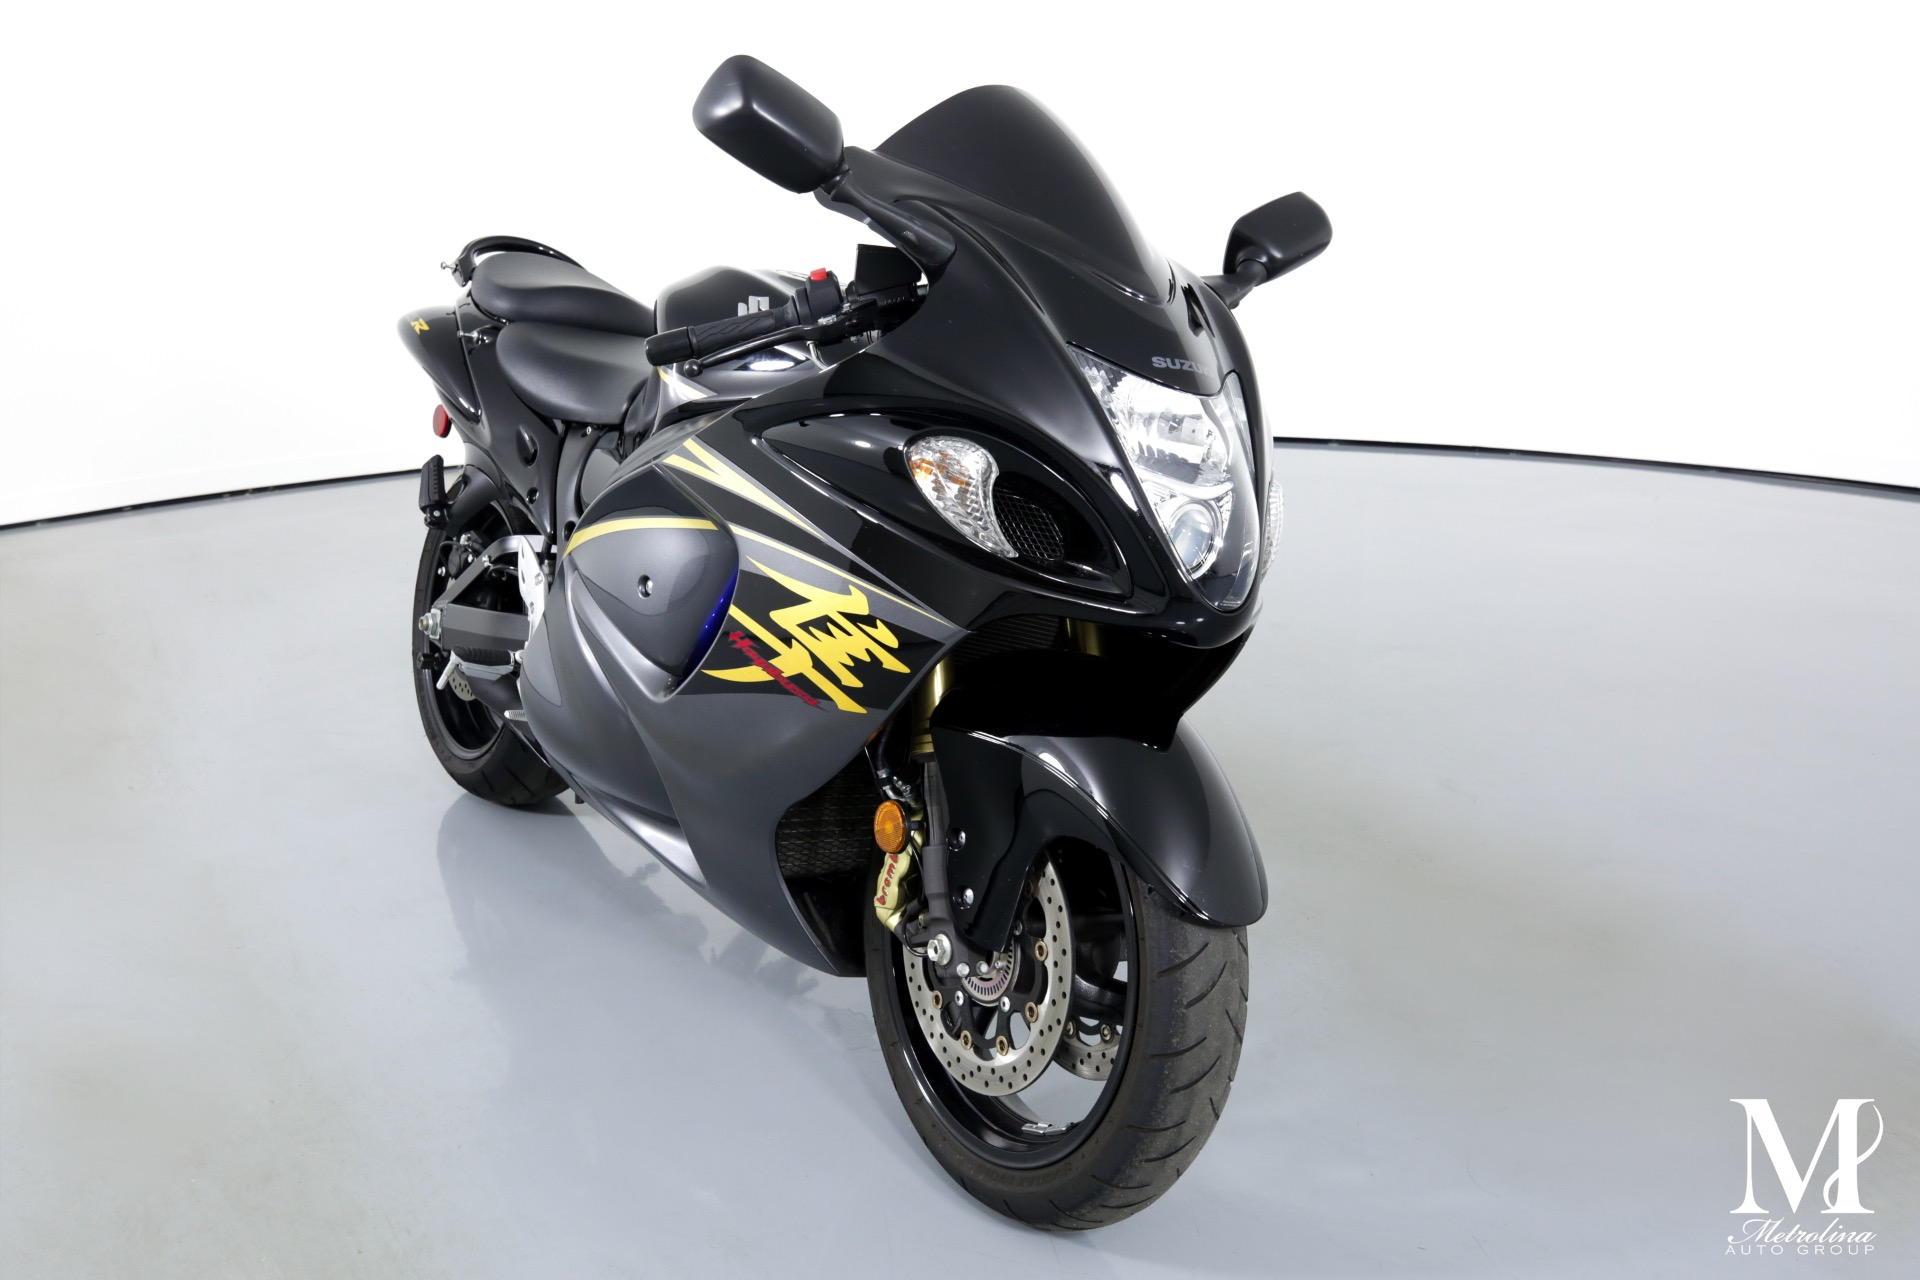 Used 2015 SUZUKI GSX 1300 RA HAYABUSA for sale $9,996 at Metrolina Auto Group in Charlotte NC 28217 - 2